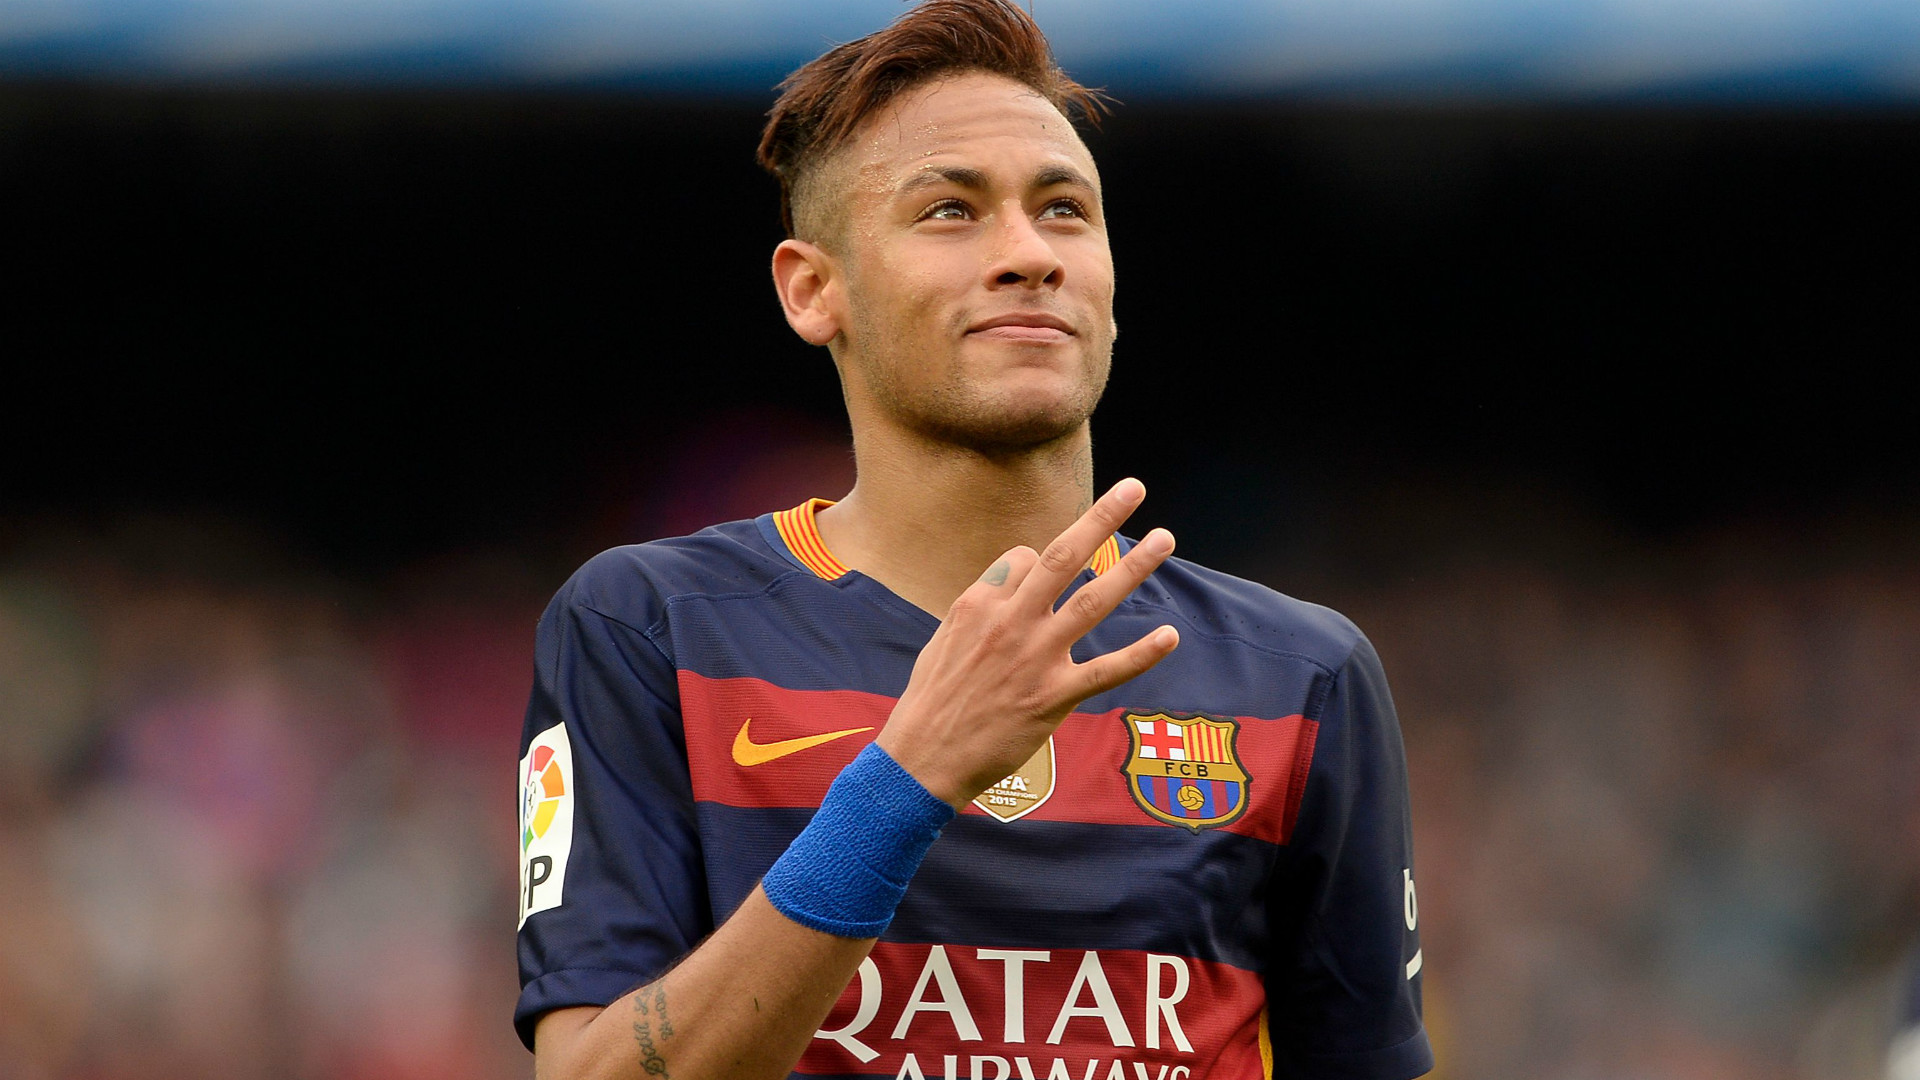 neymar jr football soccer player free hd phone desktop bakground download images